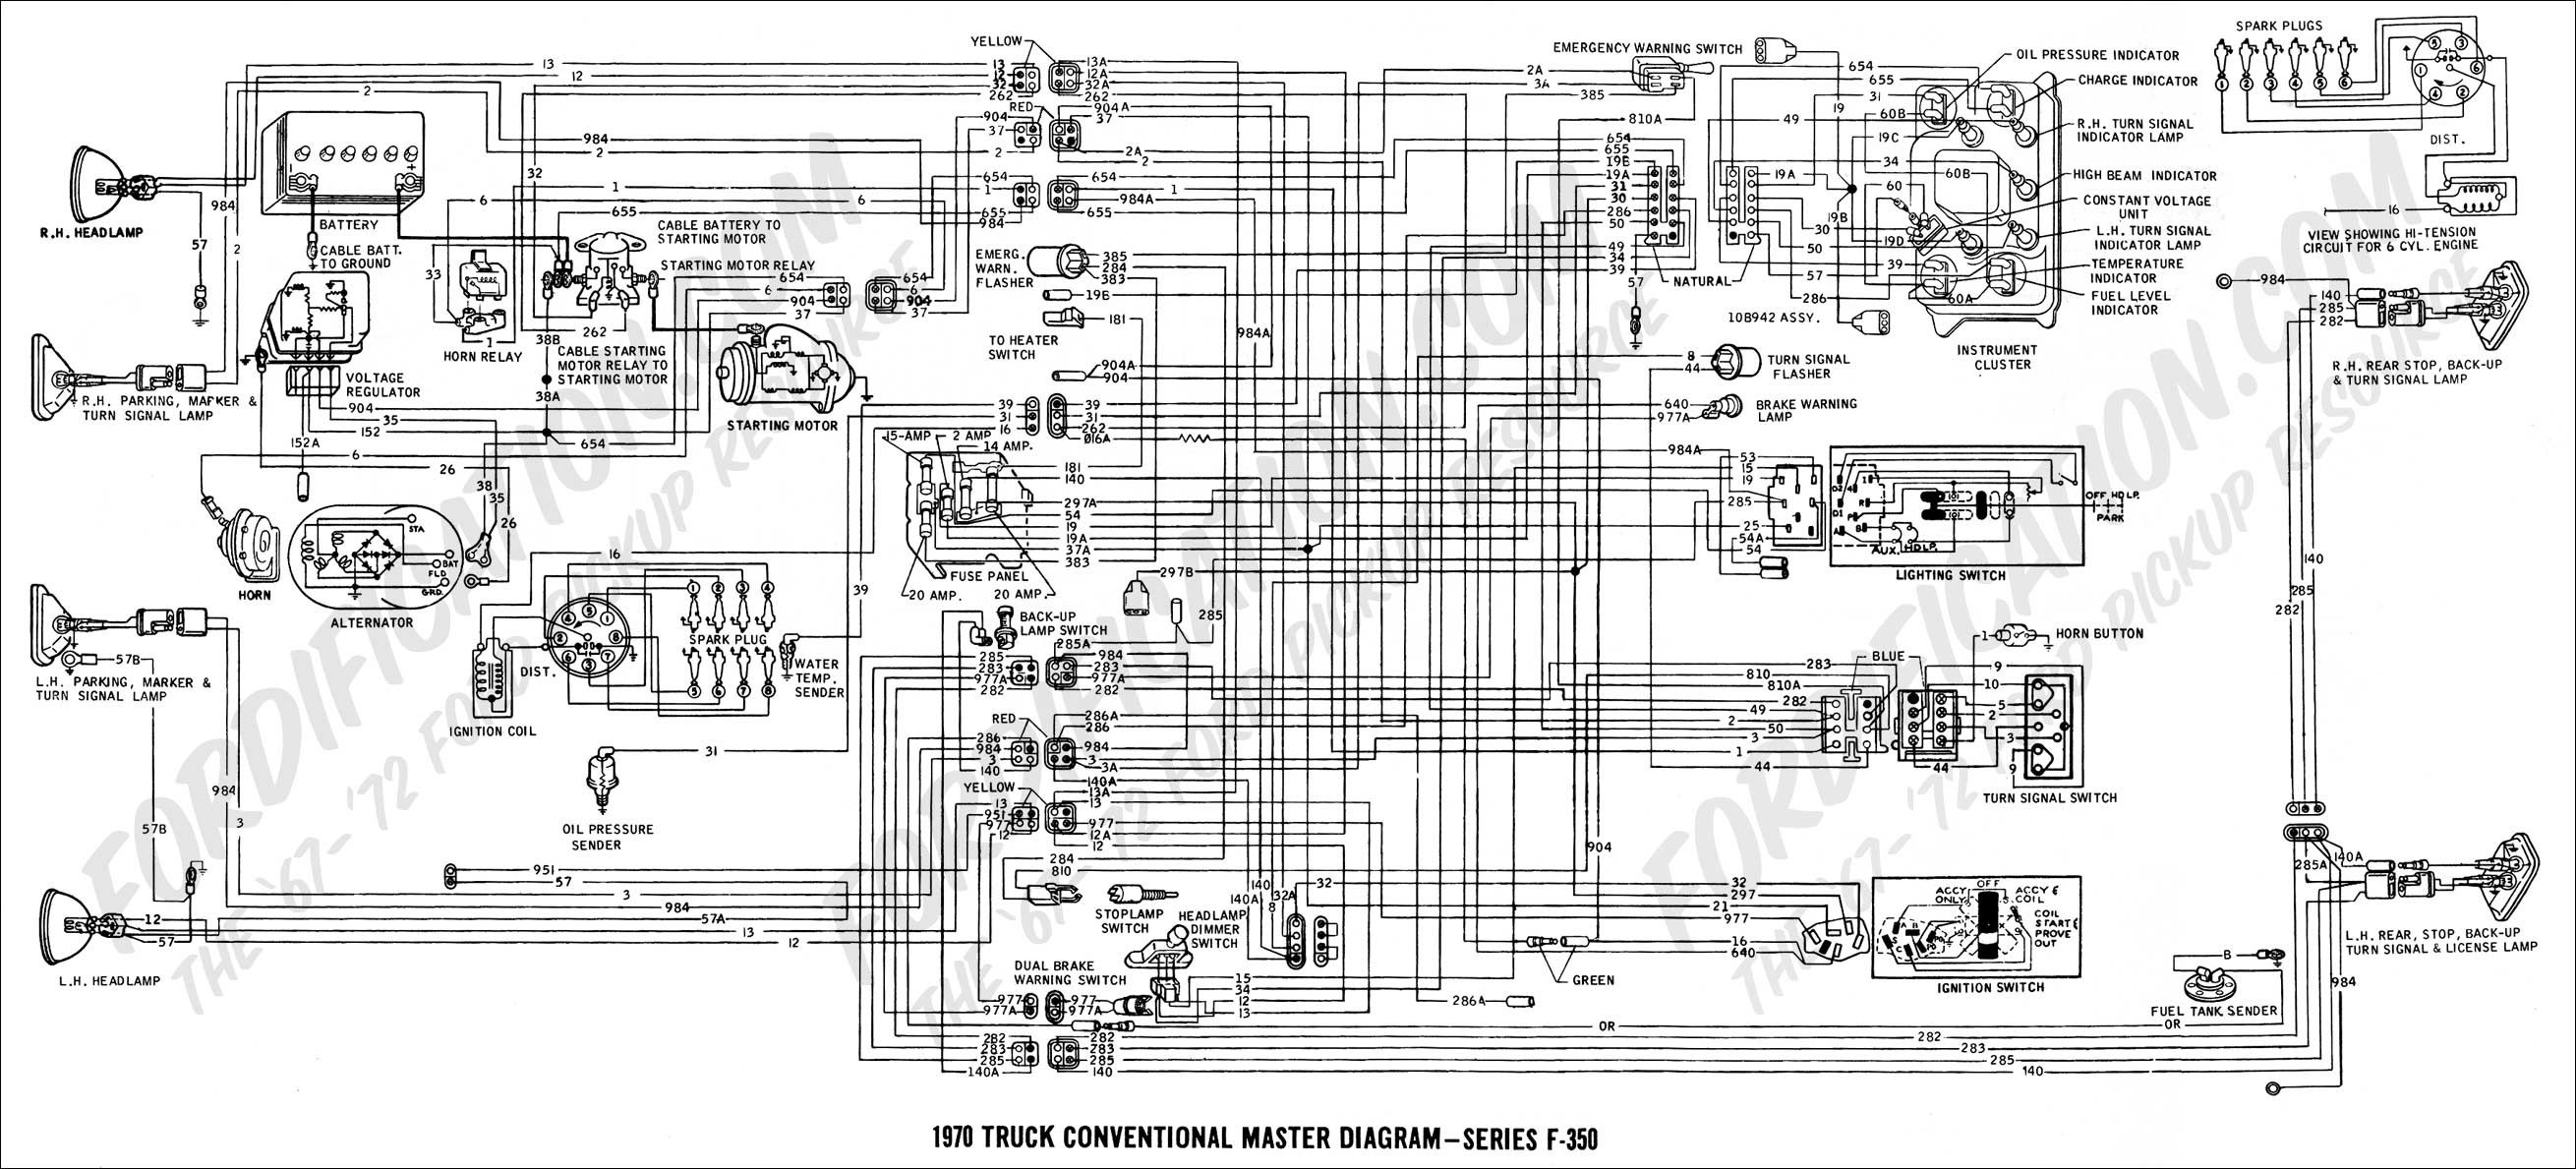 Exelent Industrial Wiring Diagram Symbols Collection - The Wire ...